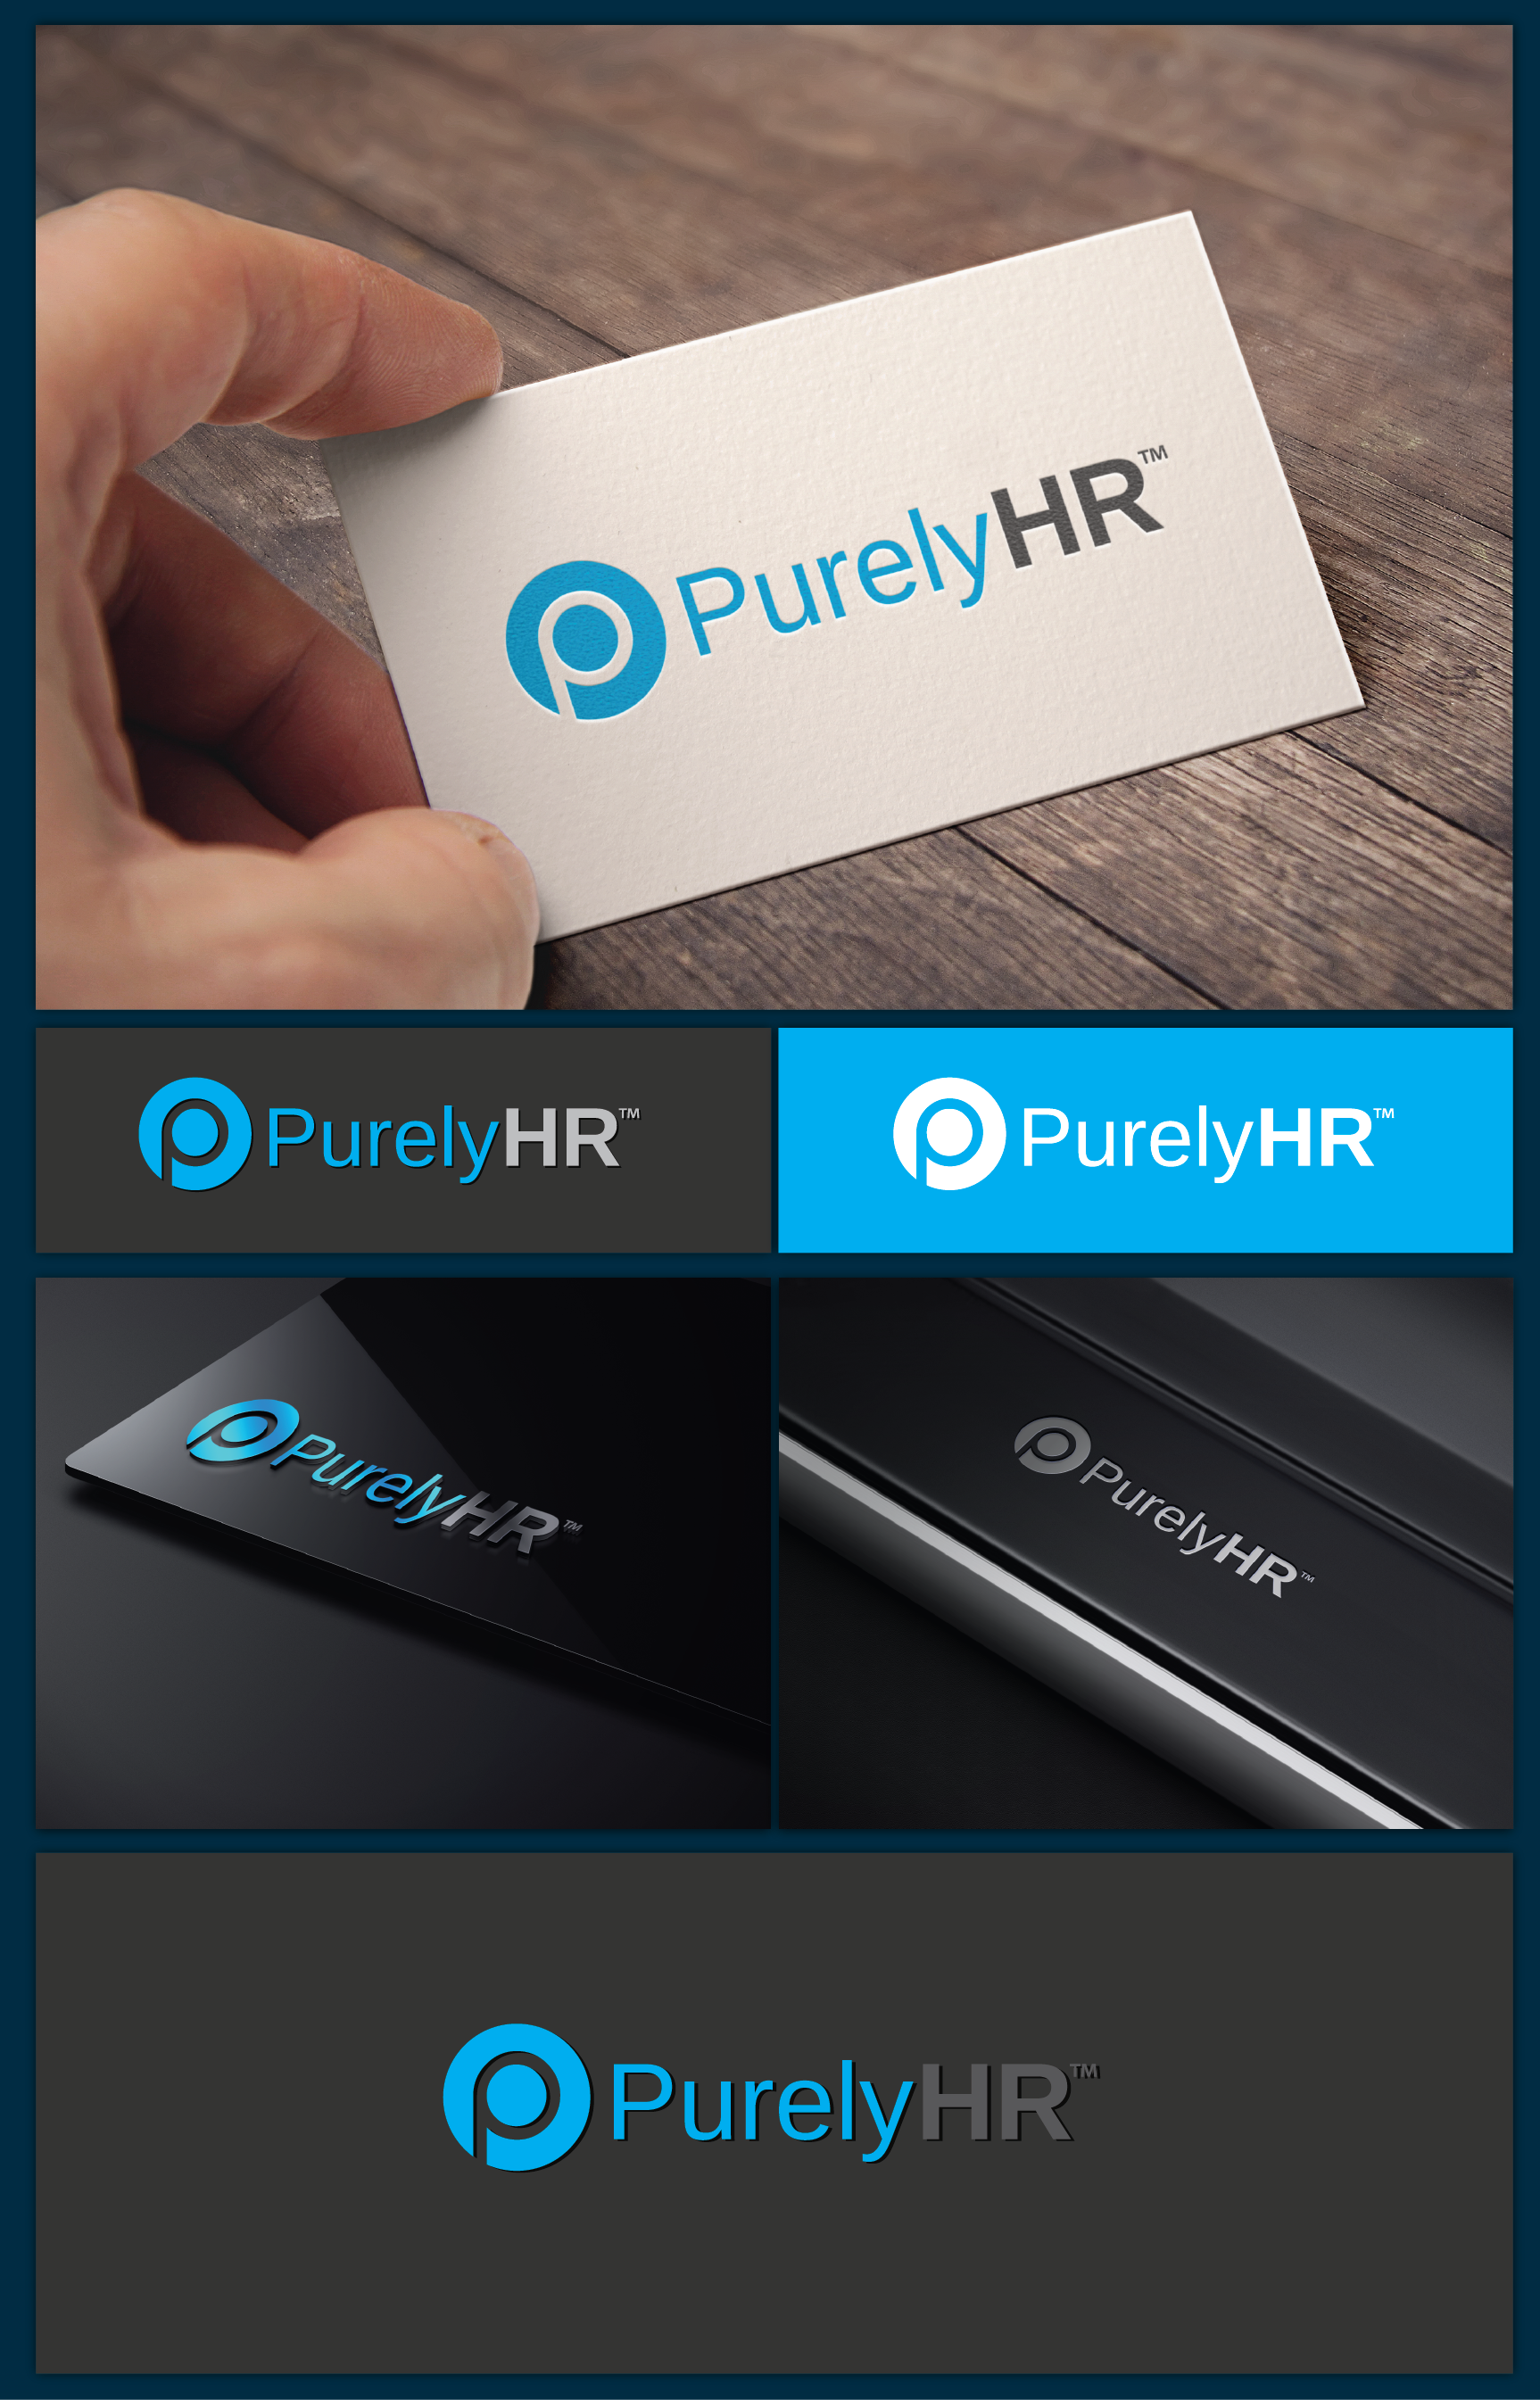 Create a logo for PurelyHR, our web-based HR software!